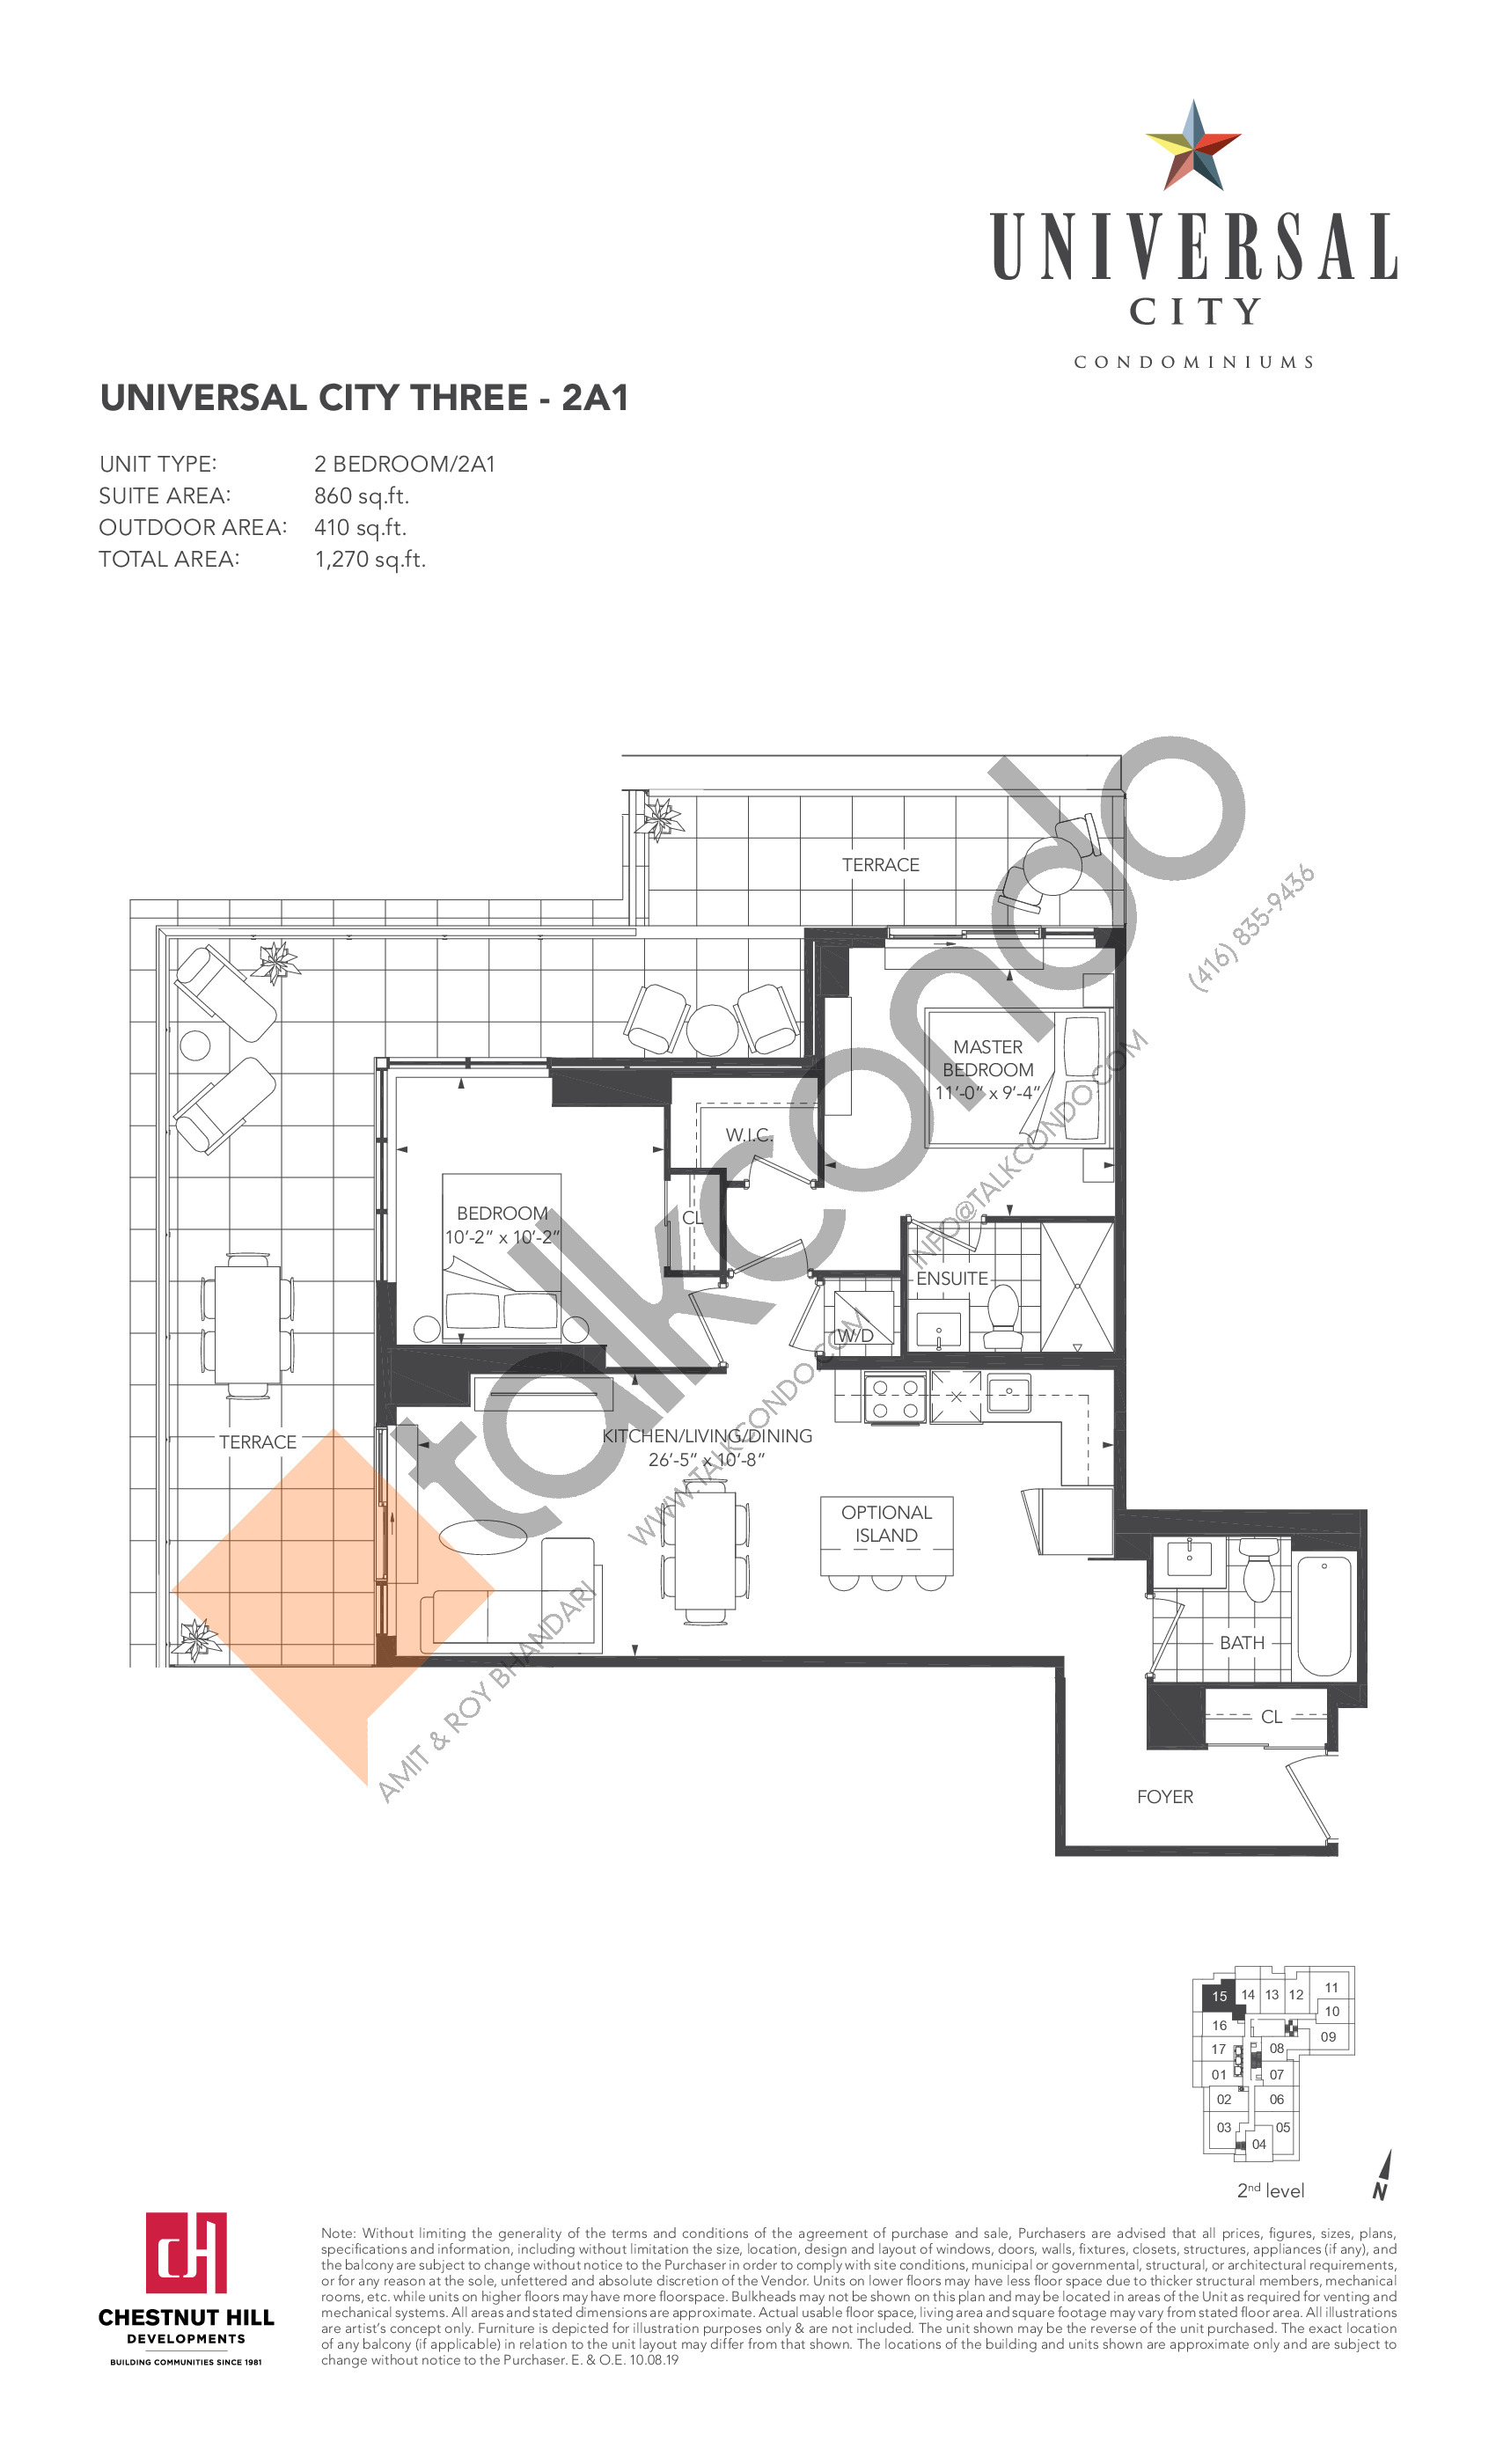 2A1 Floor Plan at Universal City Condos - Phase 3 - 860 sq.ft